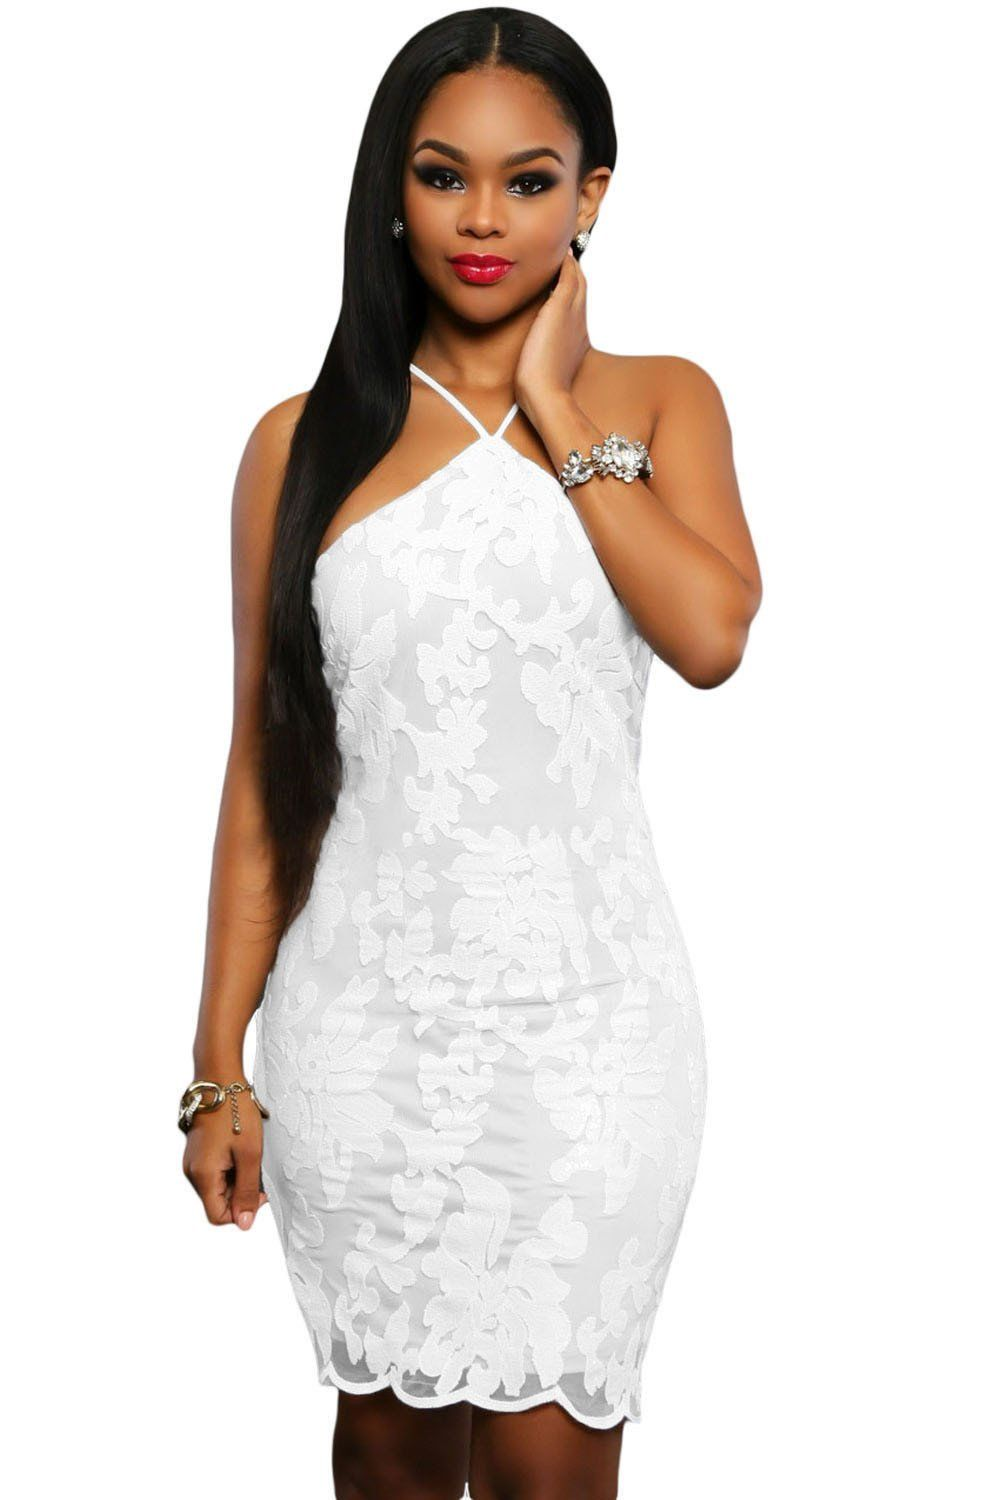 White Lace Floral Luxe Party Dress ChicLike.com #White   WOMEN\'S ...